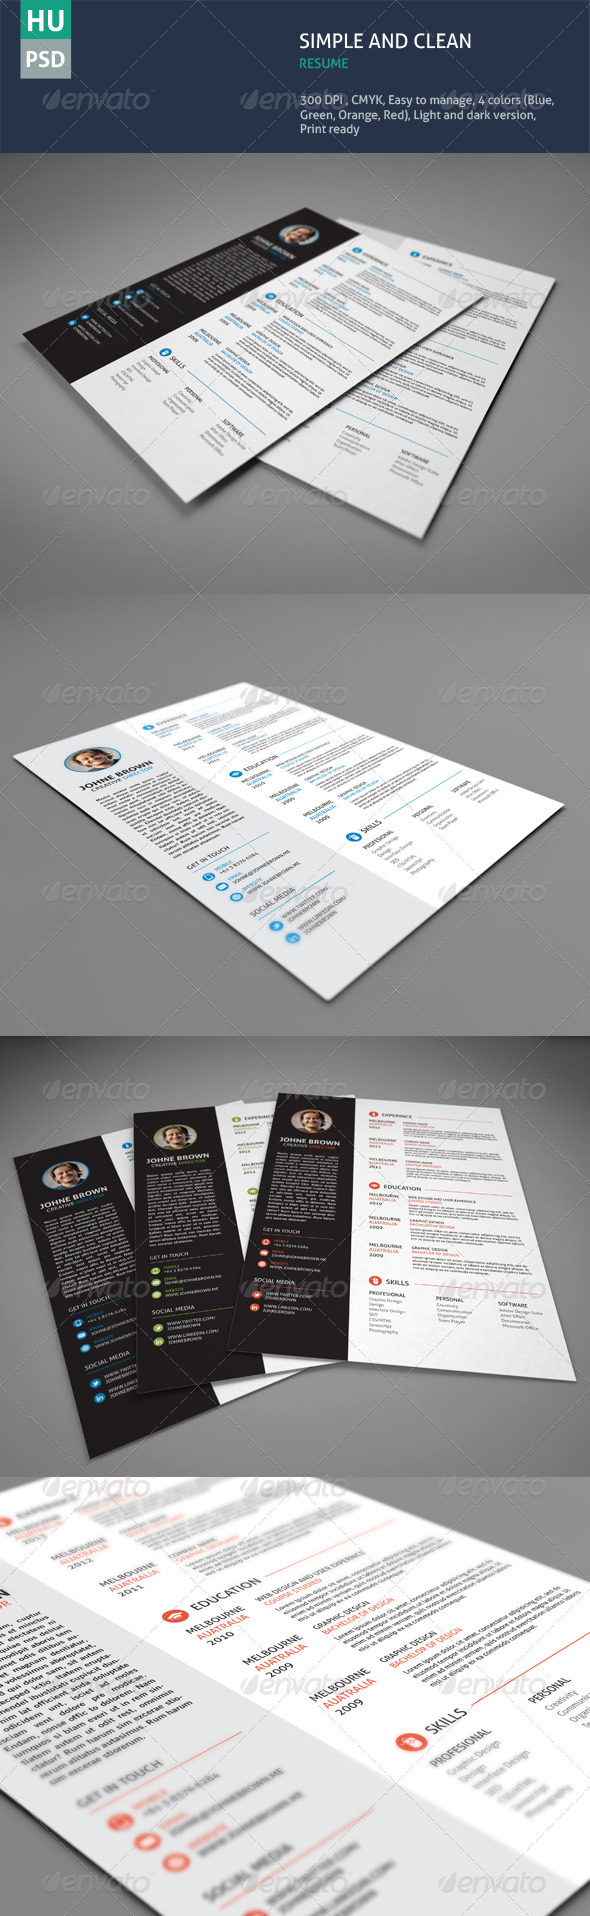 GraphicRiver Simple & Clean Resume 5896454